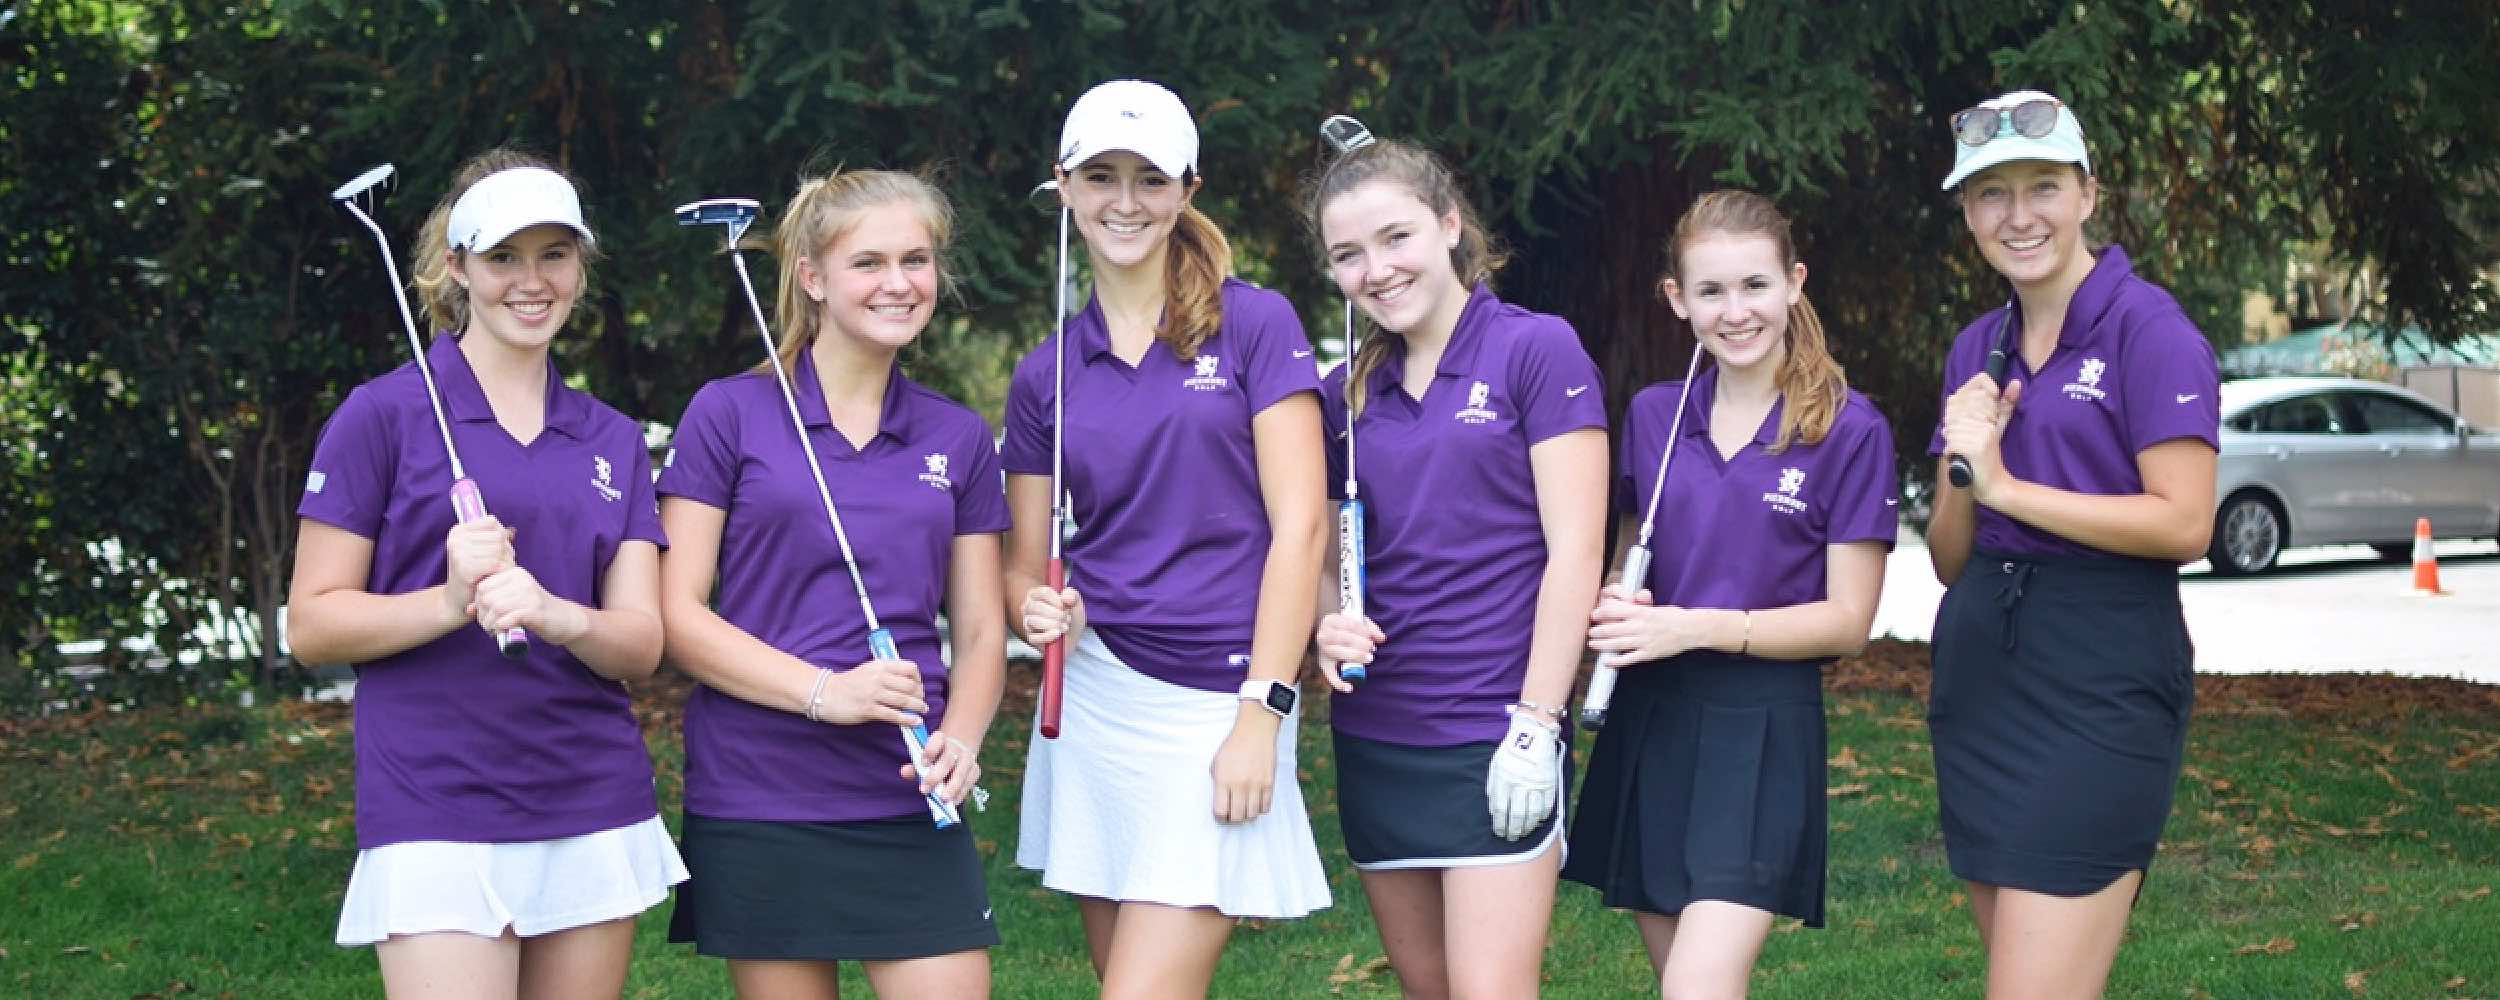 Girls-Golf-Panel.jpg